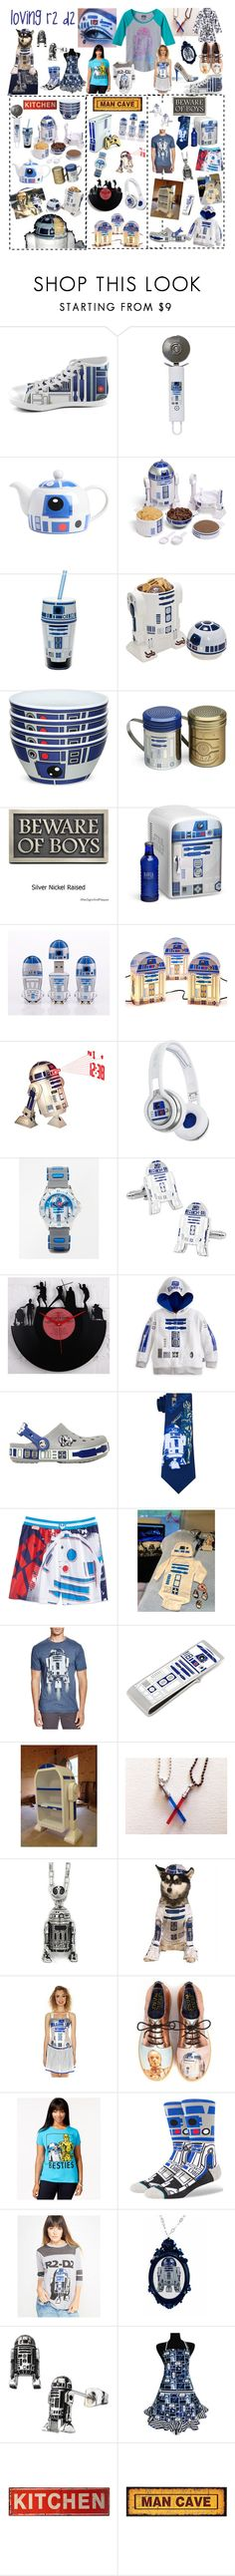 """""""r2 d2, my favorite Star Wars character!!"""" by troyer-ba ❤ liked on Polyvore featuring R2, ThinkGeek, Zak! Designs, SMS Audio, ASOS, Cufflinks, Inc., Crocs, Bioworld, Junk Food Clothing and Han Cholo"""